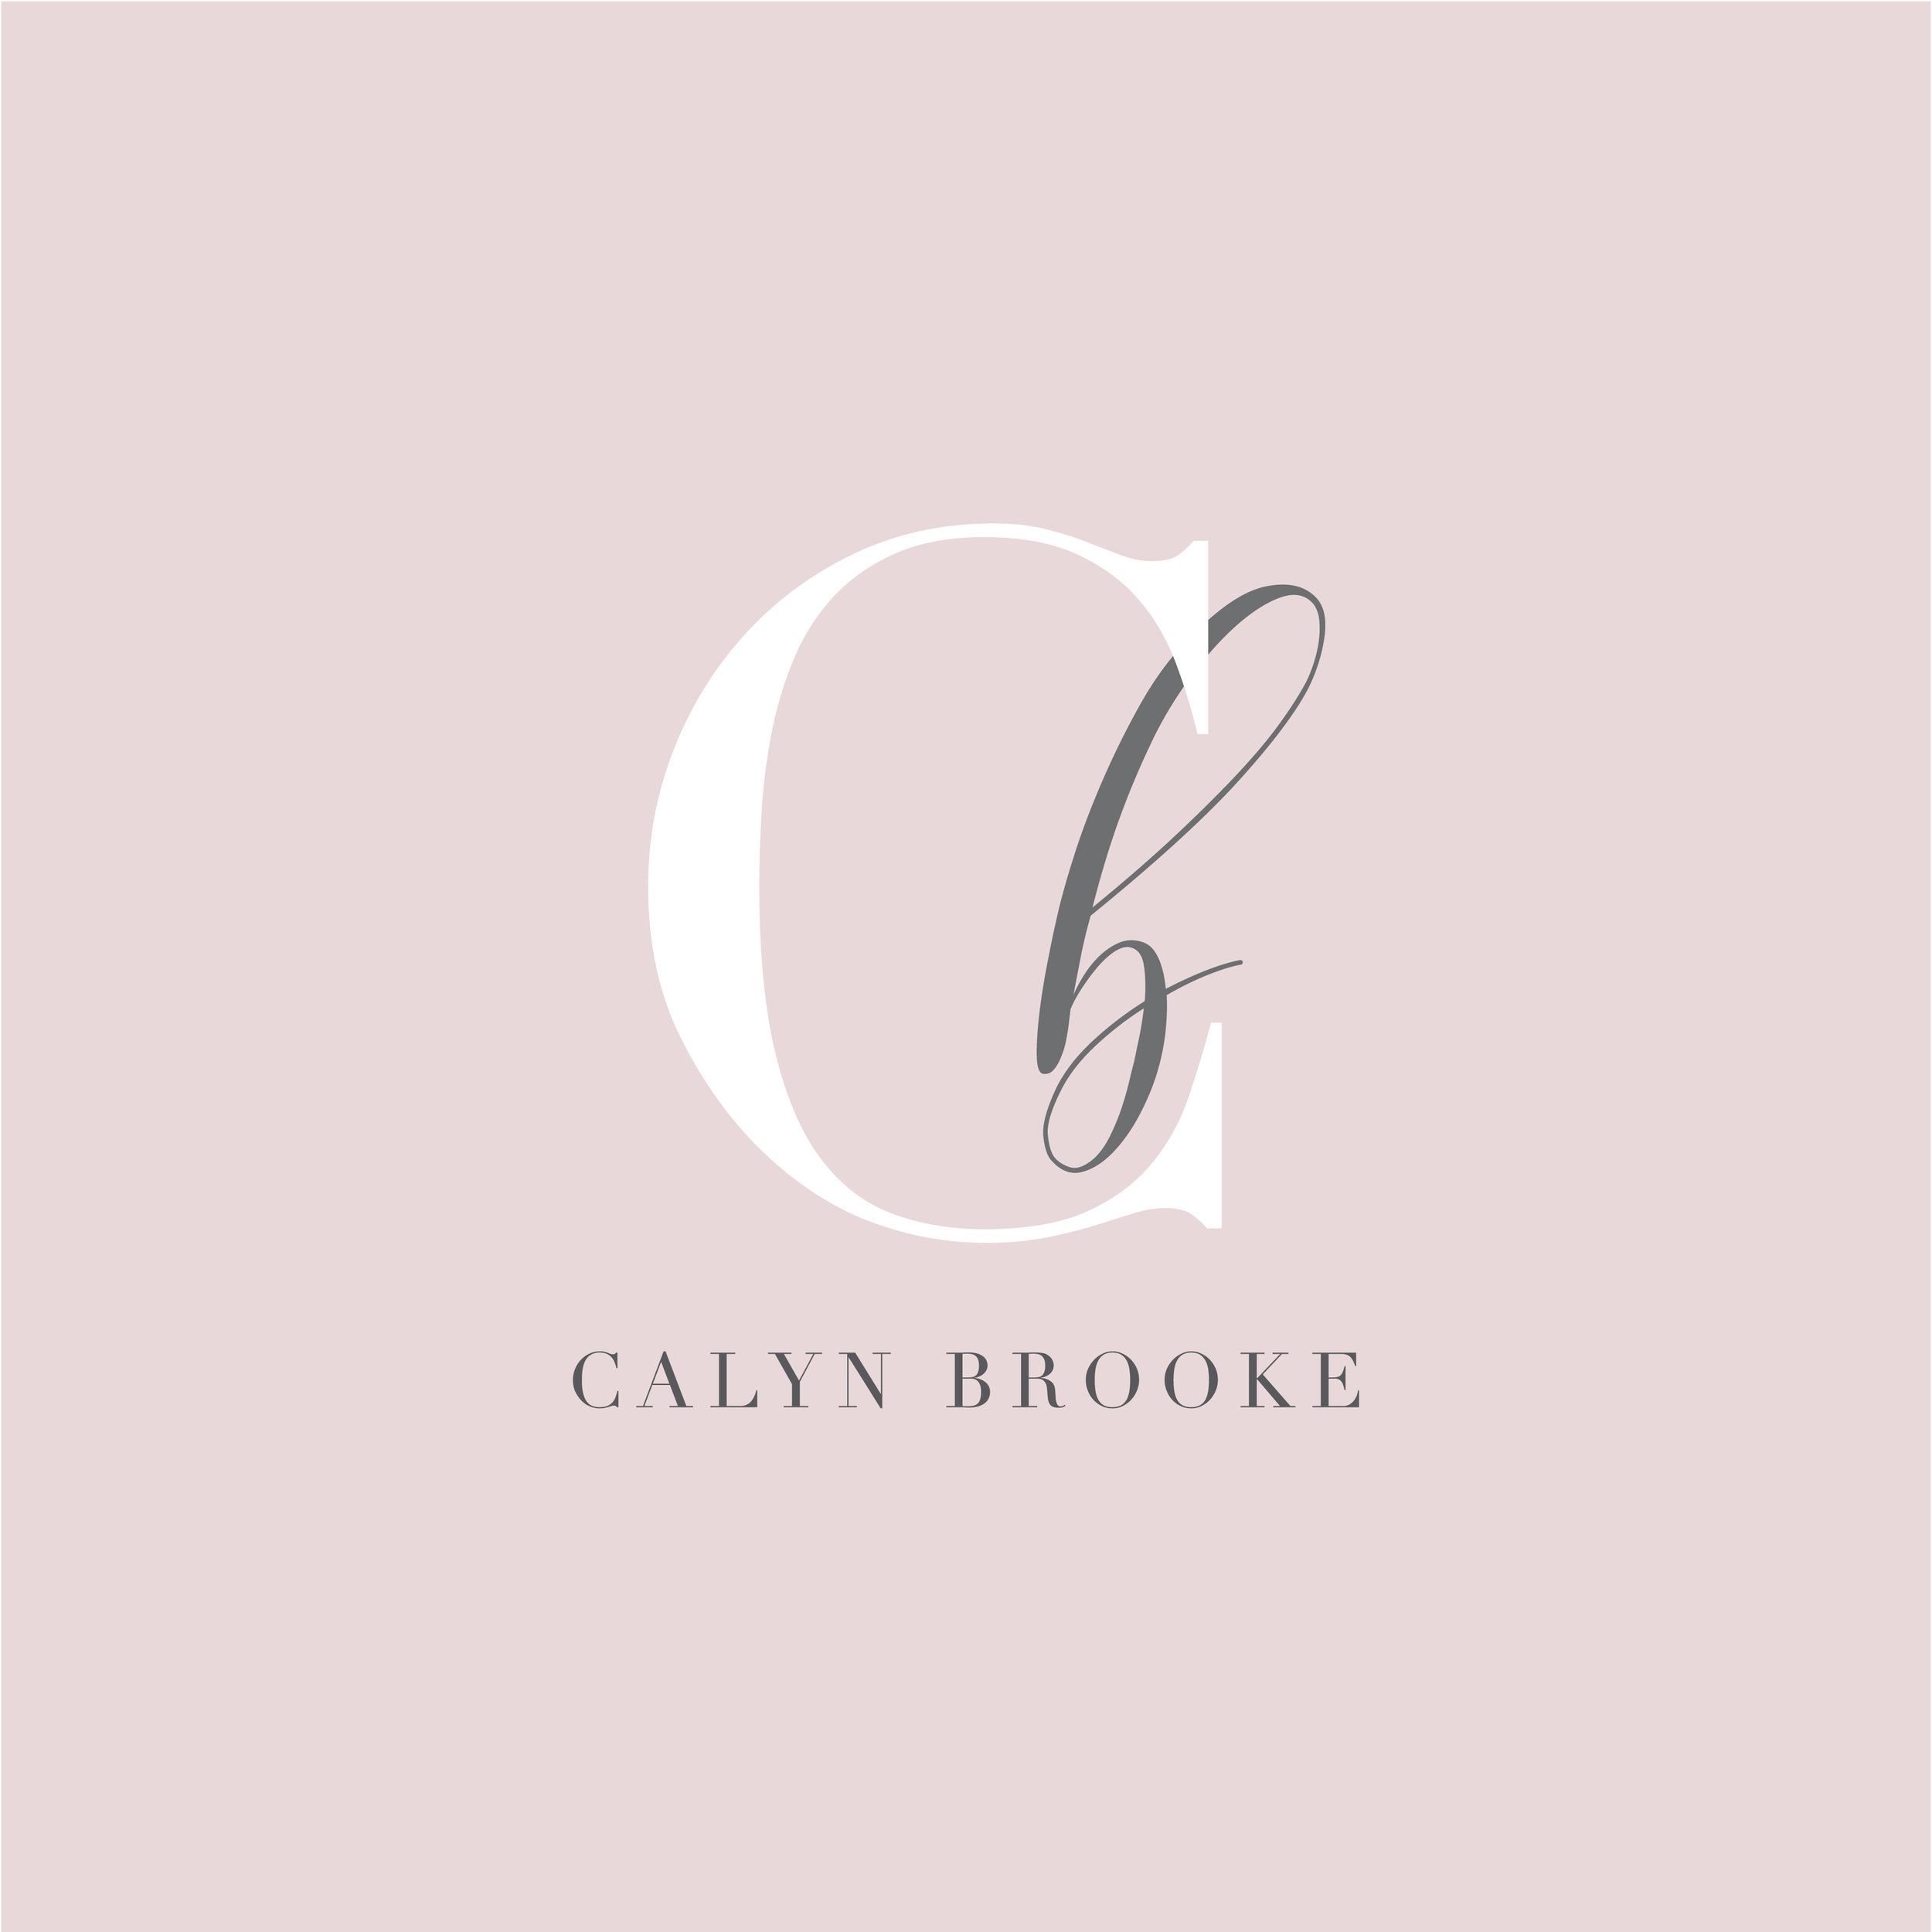 Calyn Brooke Logo-01.JPG